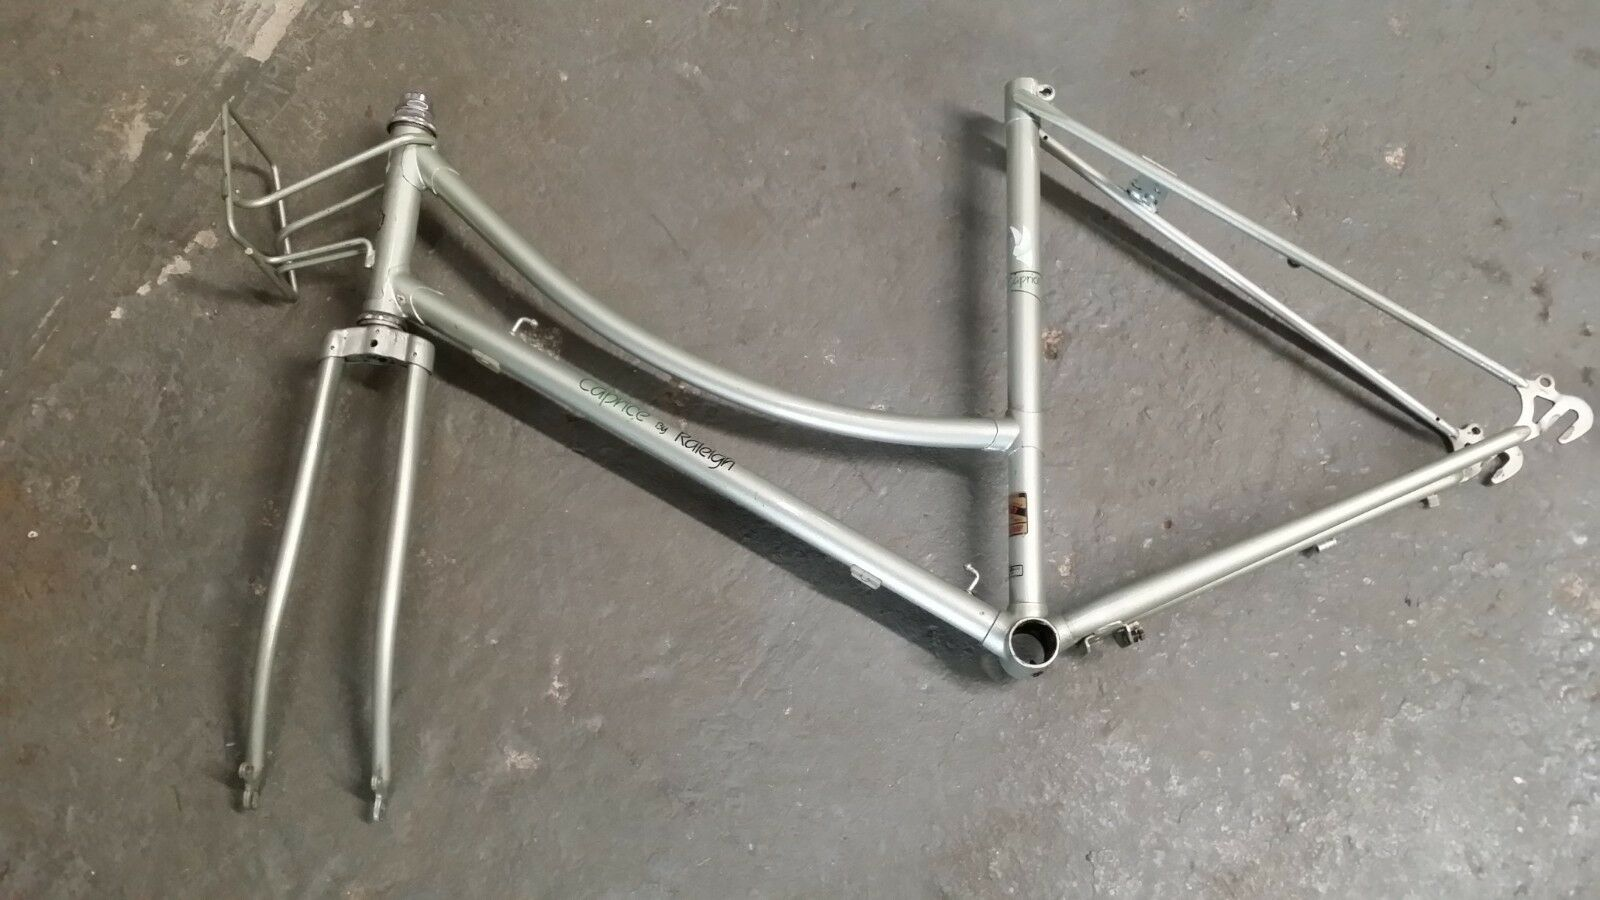 VINTAGE RALEIGH CAPRICE BIKE FRAME 19.5  WITH FORK, BASKET HANGER